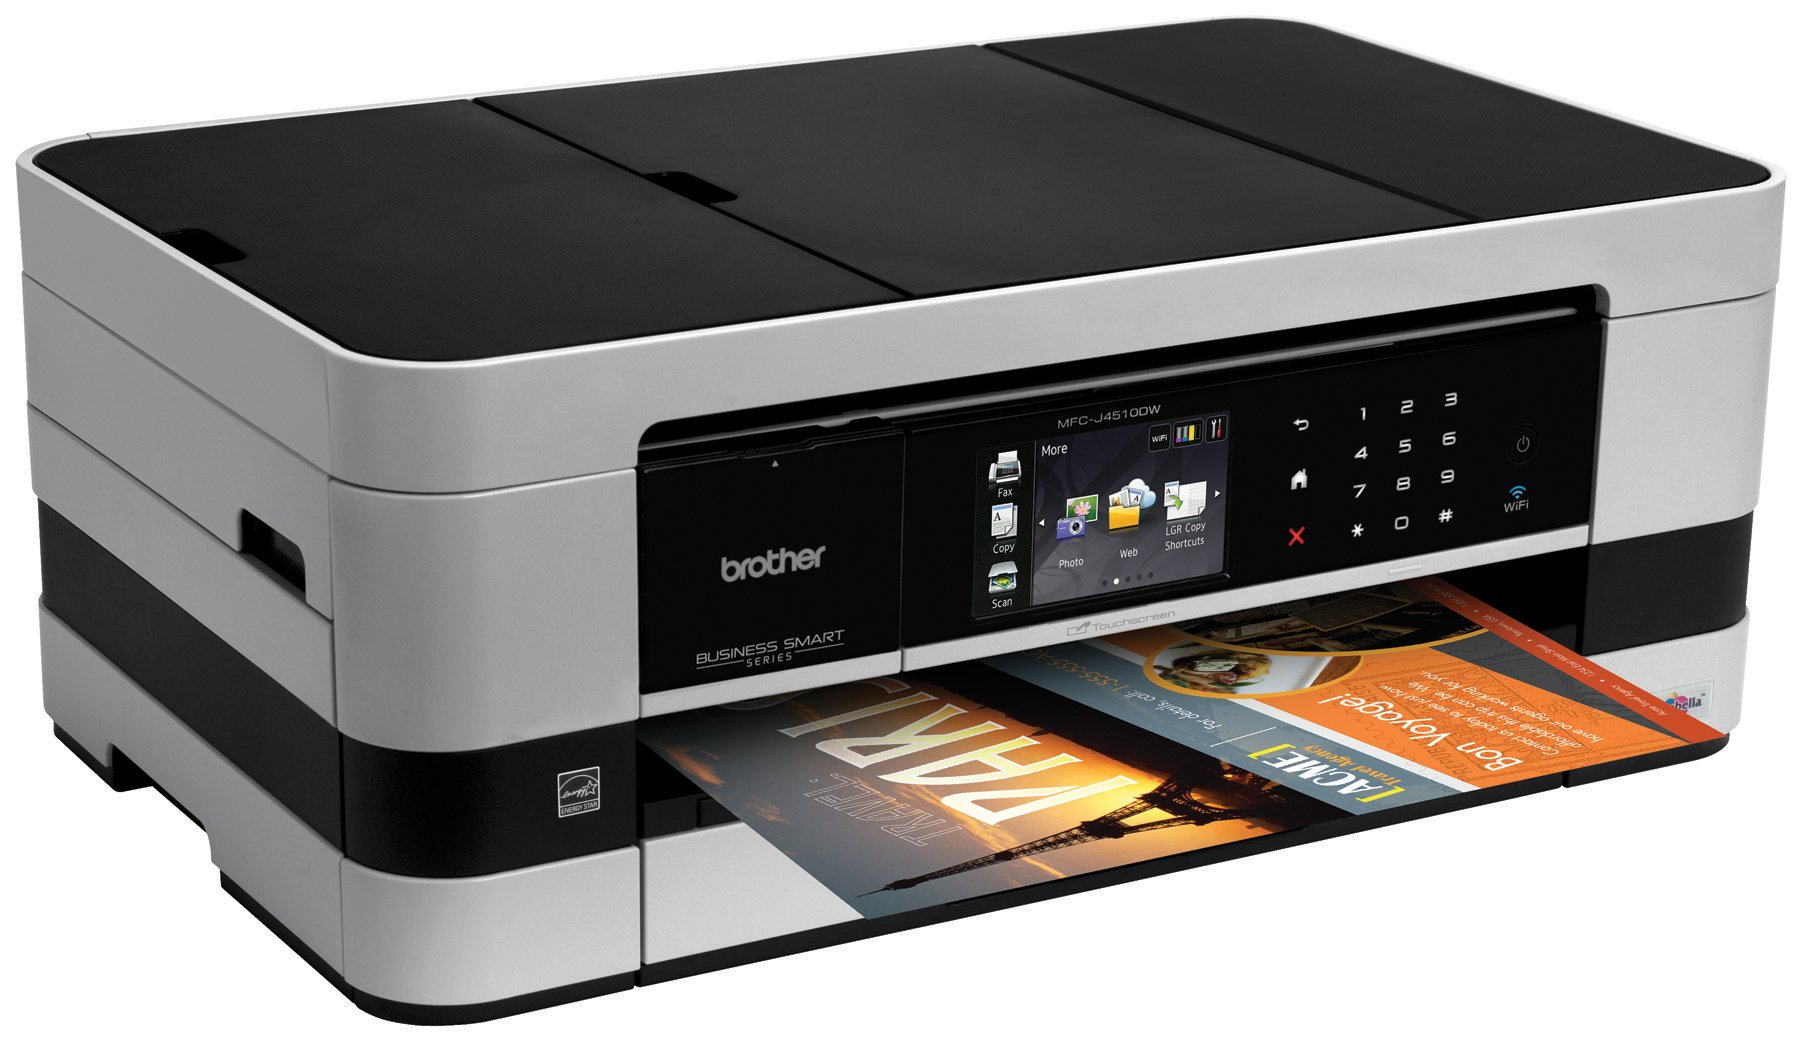 Brother Printer MFCJ4510DW Wireless Color Photo Printer with Scanner, Copier and Fax, Amazon Dash Replenishment Enabled by Brother (Image #3)